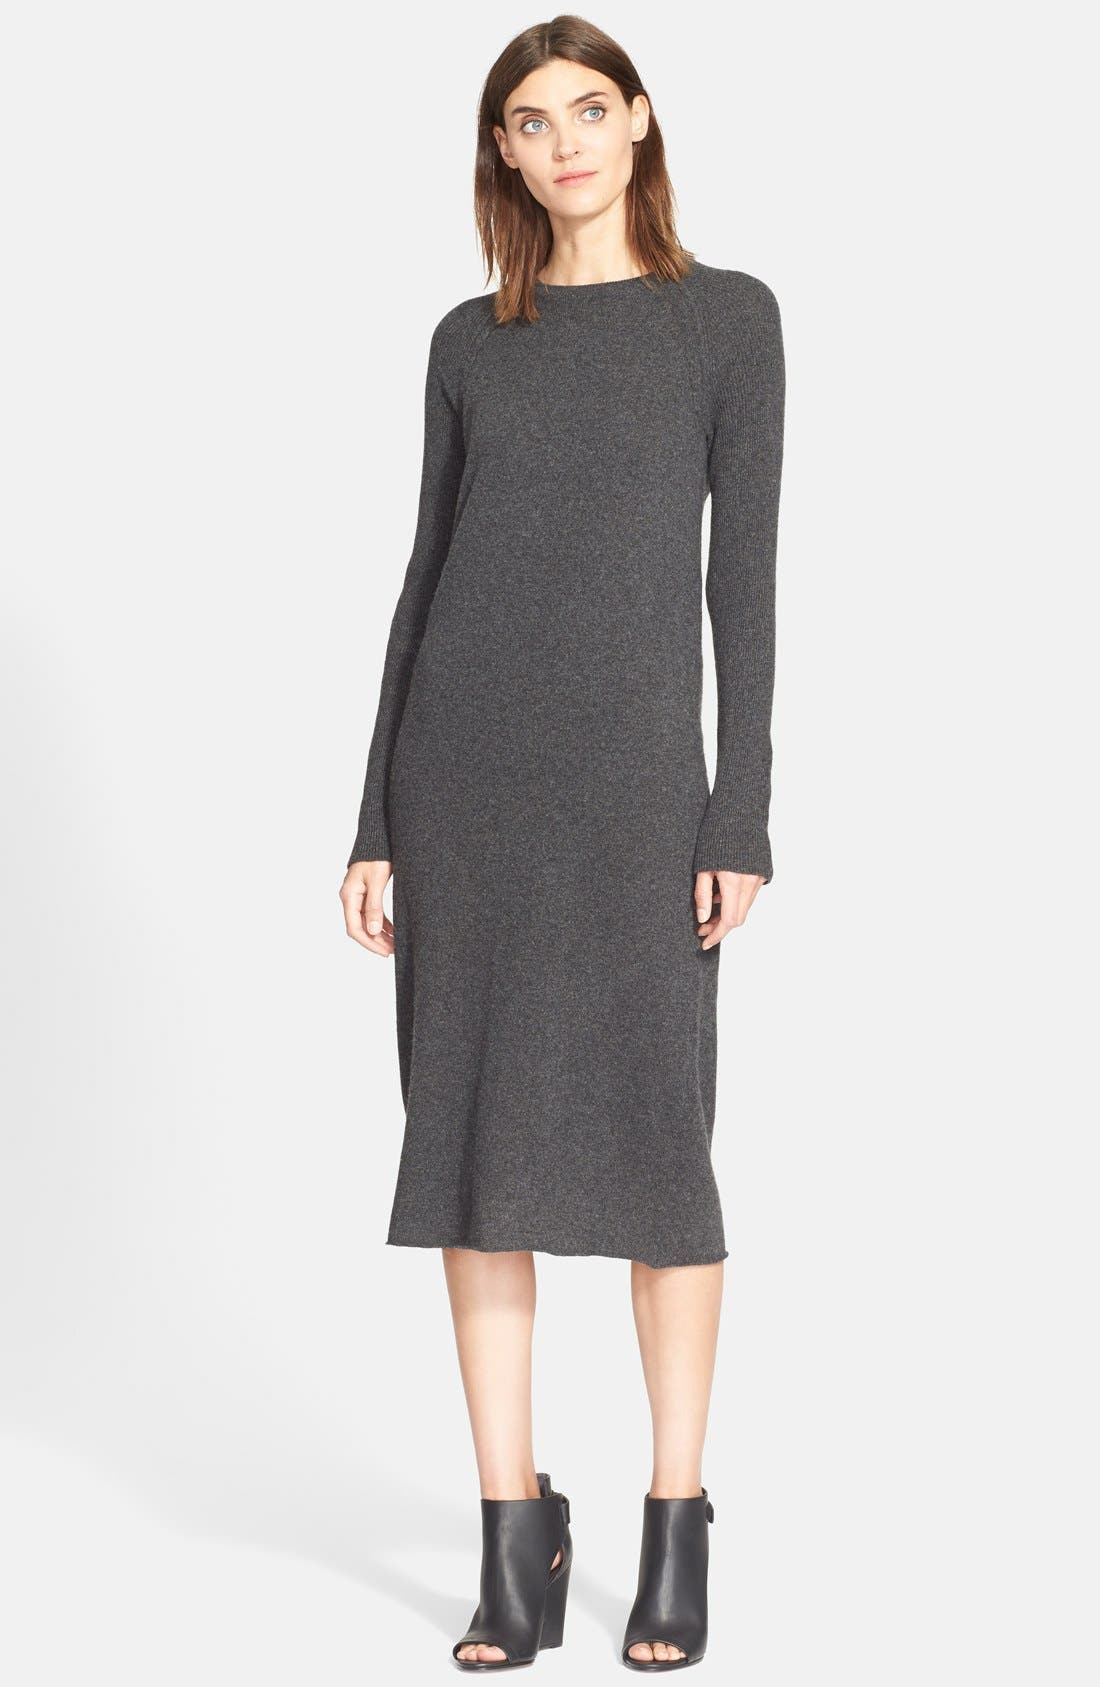 Main Image - Equipment 'Willy' Cashmere Sweater Dress